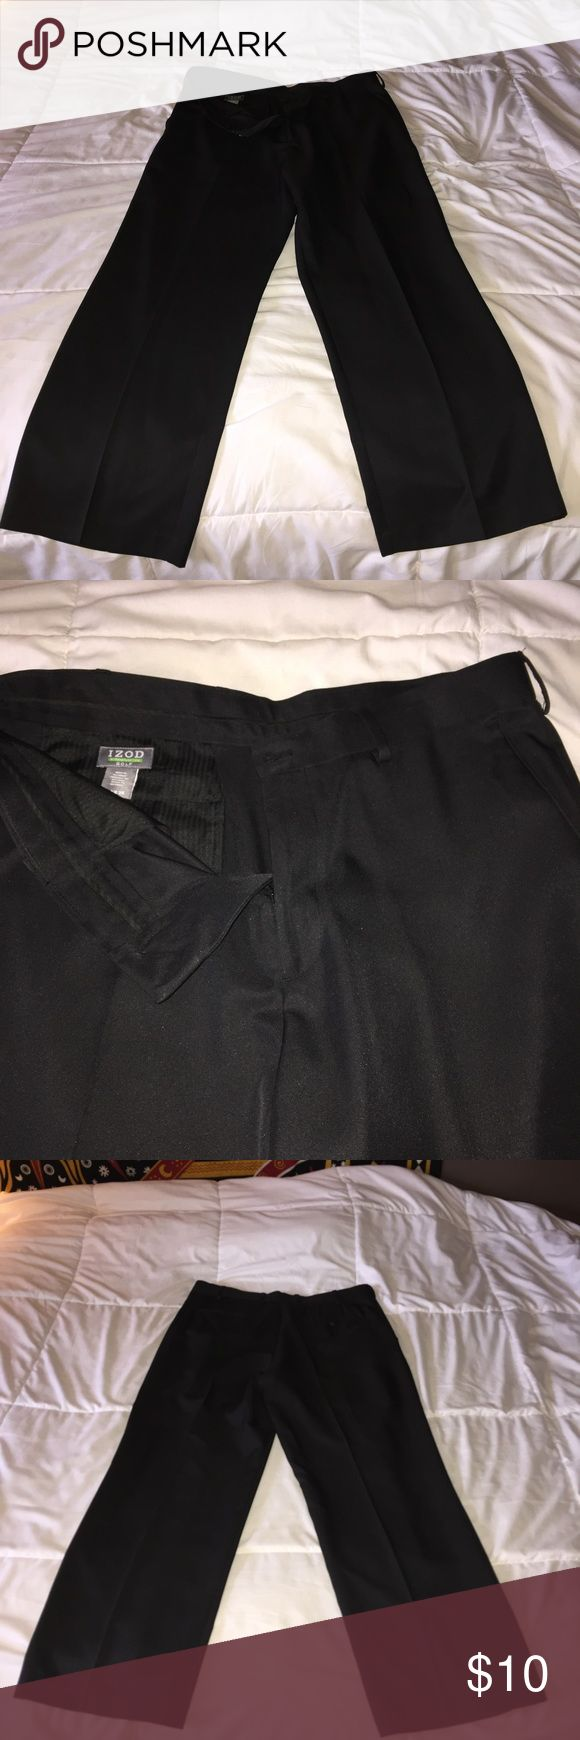 IZOD Golf Pants 34x29 IZOD Golf black pants. 34x29 Izod Pants Dress